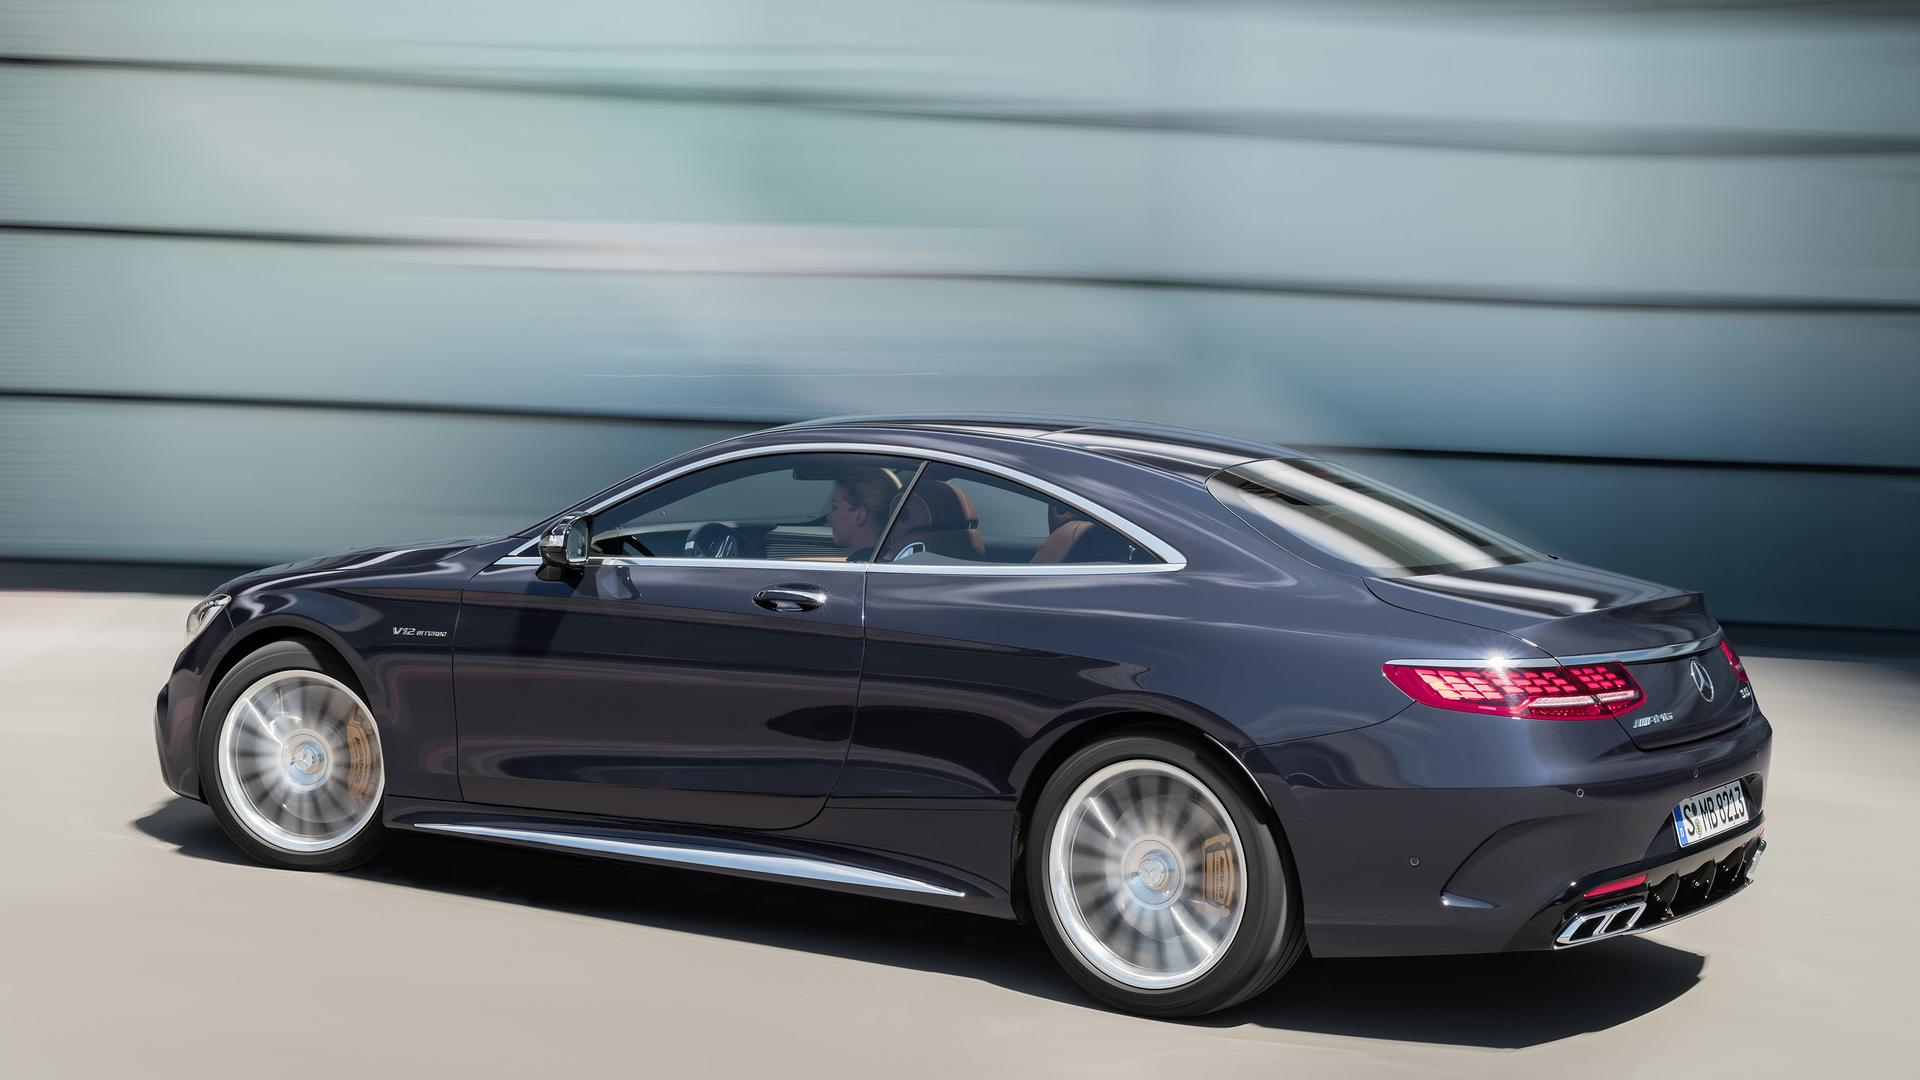 https://icdn-3.motor1.com/images/mgl/oLBx7/s1/2018-mercedes-amg-s65-coupe.jpg